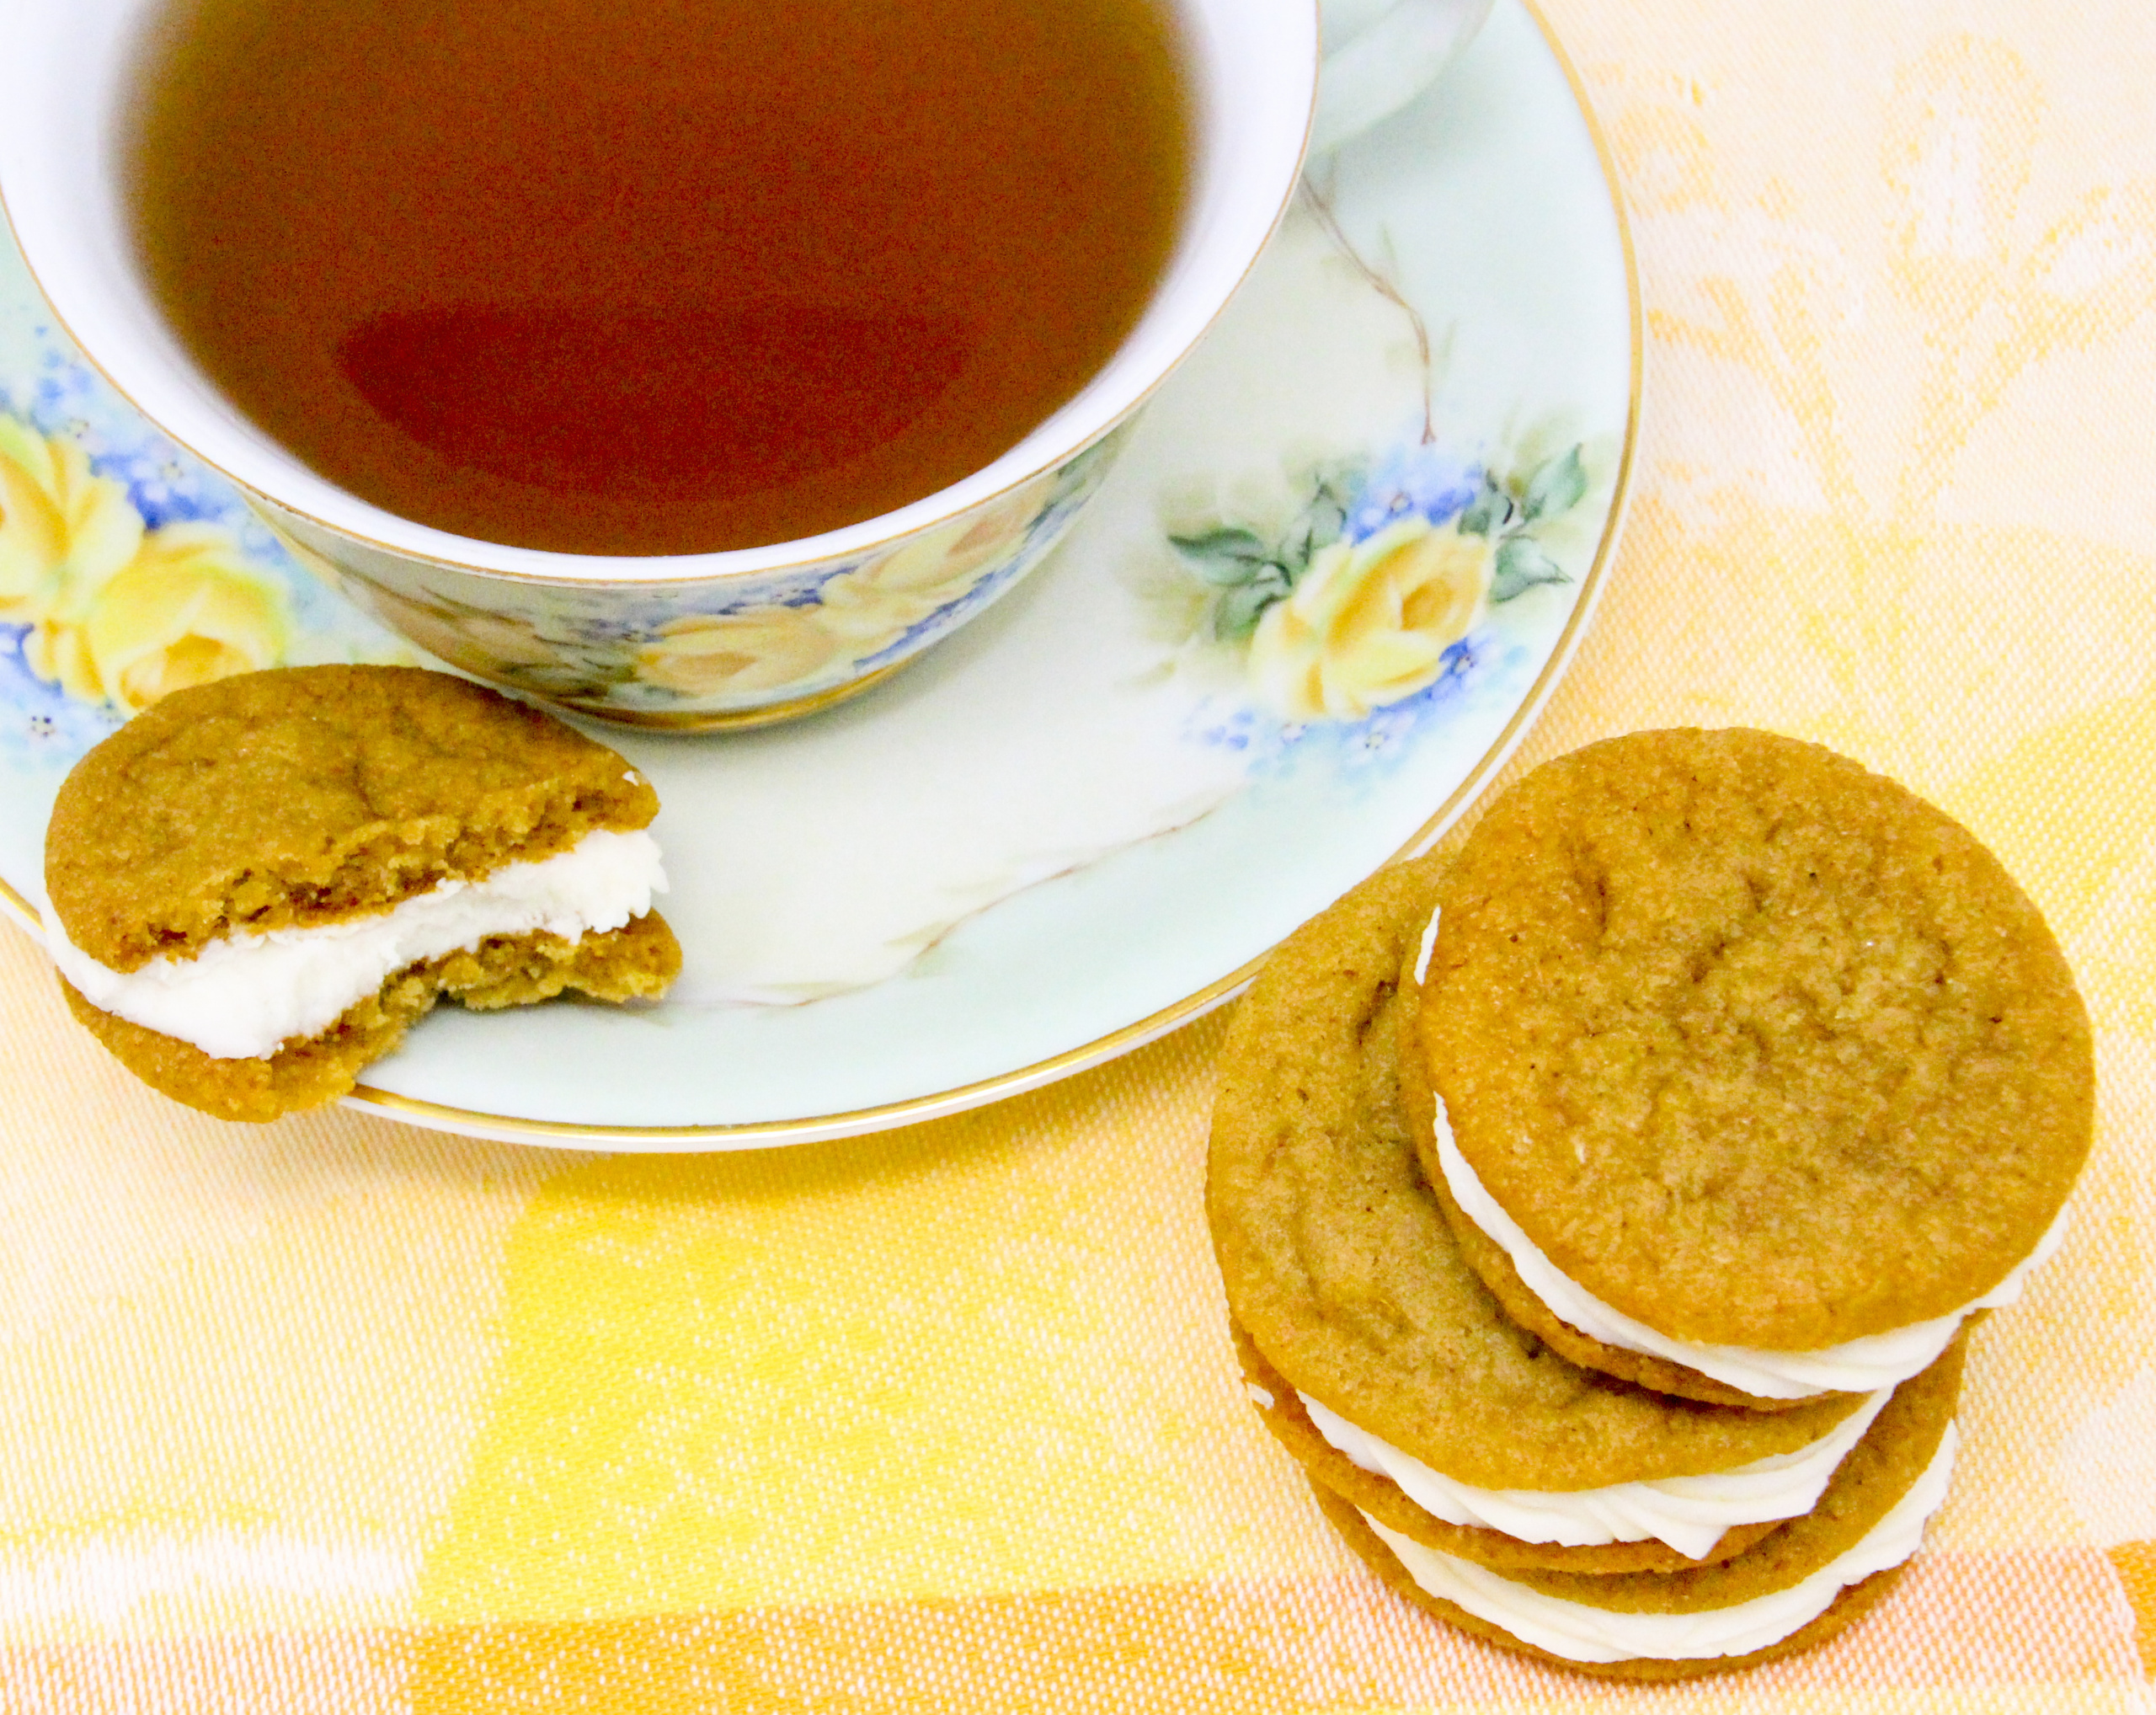 Chockful of flavor, these Lemon-Ginger Sandwich Cookies are a bit crunchy on the edges and soft and sweet on the insides. Perfection in each bite! Recipe shared with permission granted by Darci Hannah, author of MURDER AT THE CHRISTMAS COOKIE BAKE-OFF.